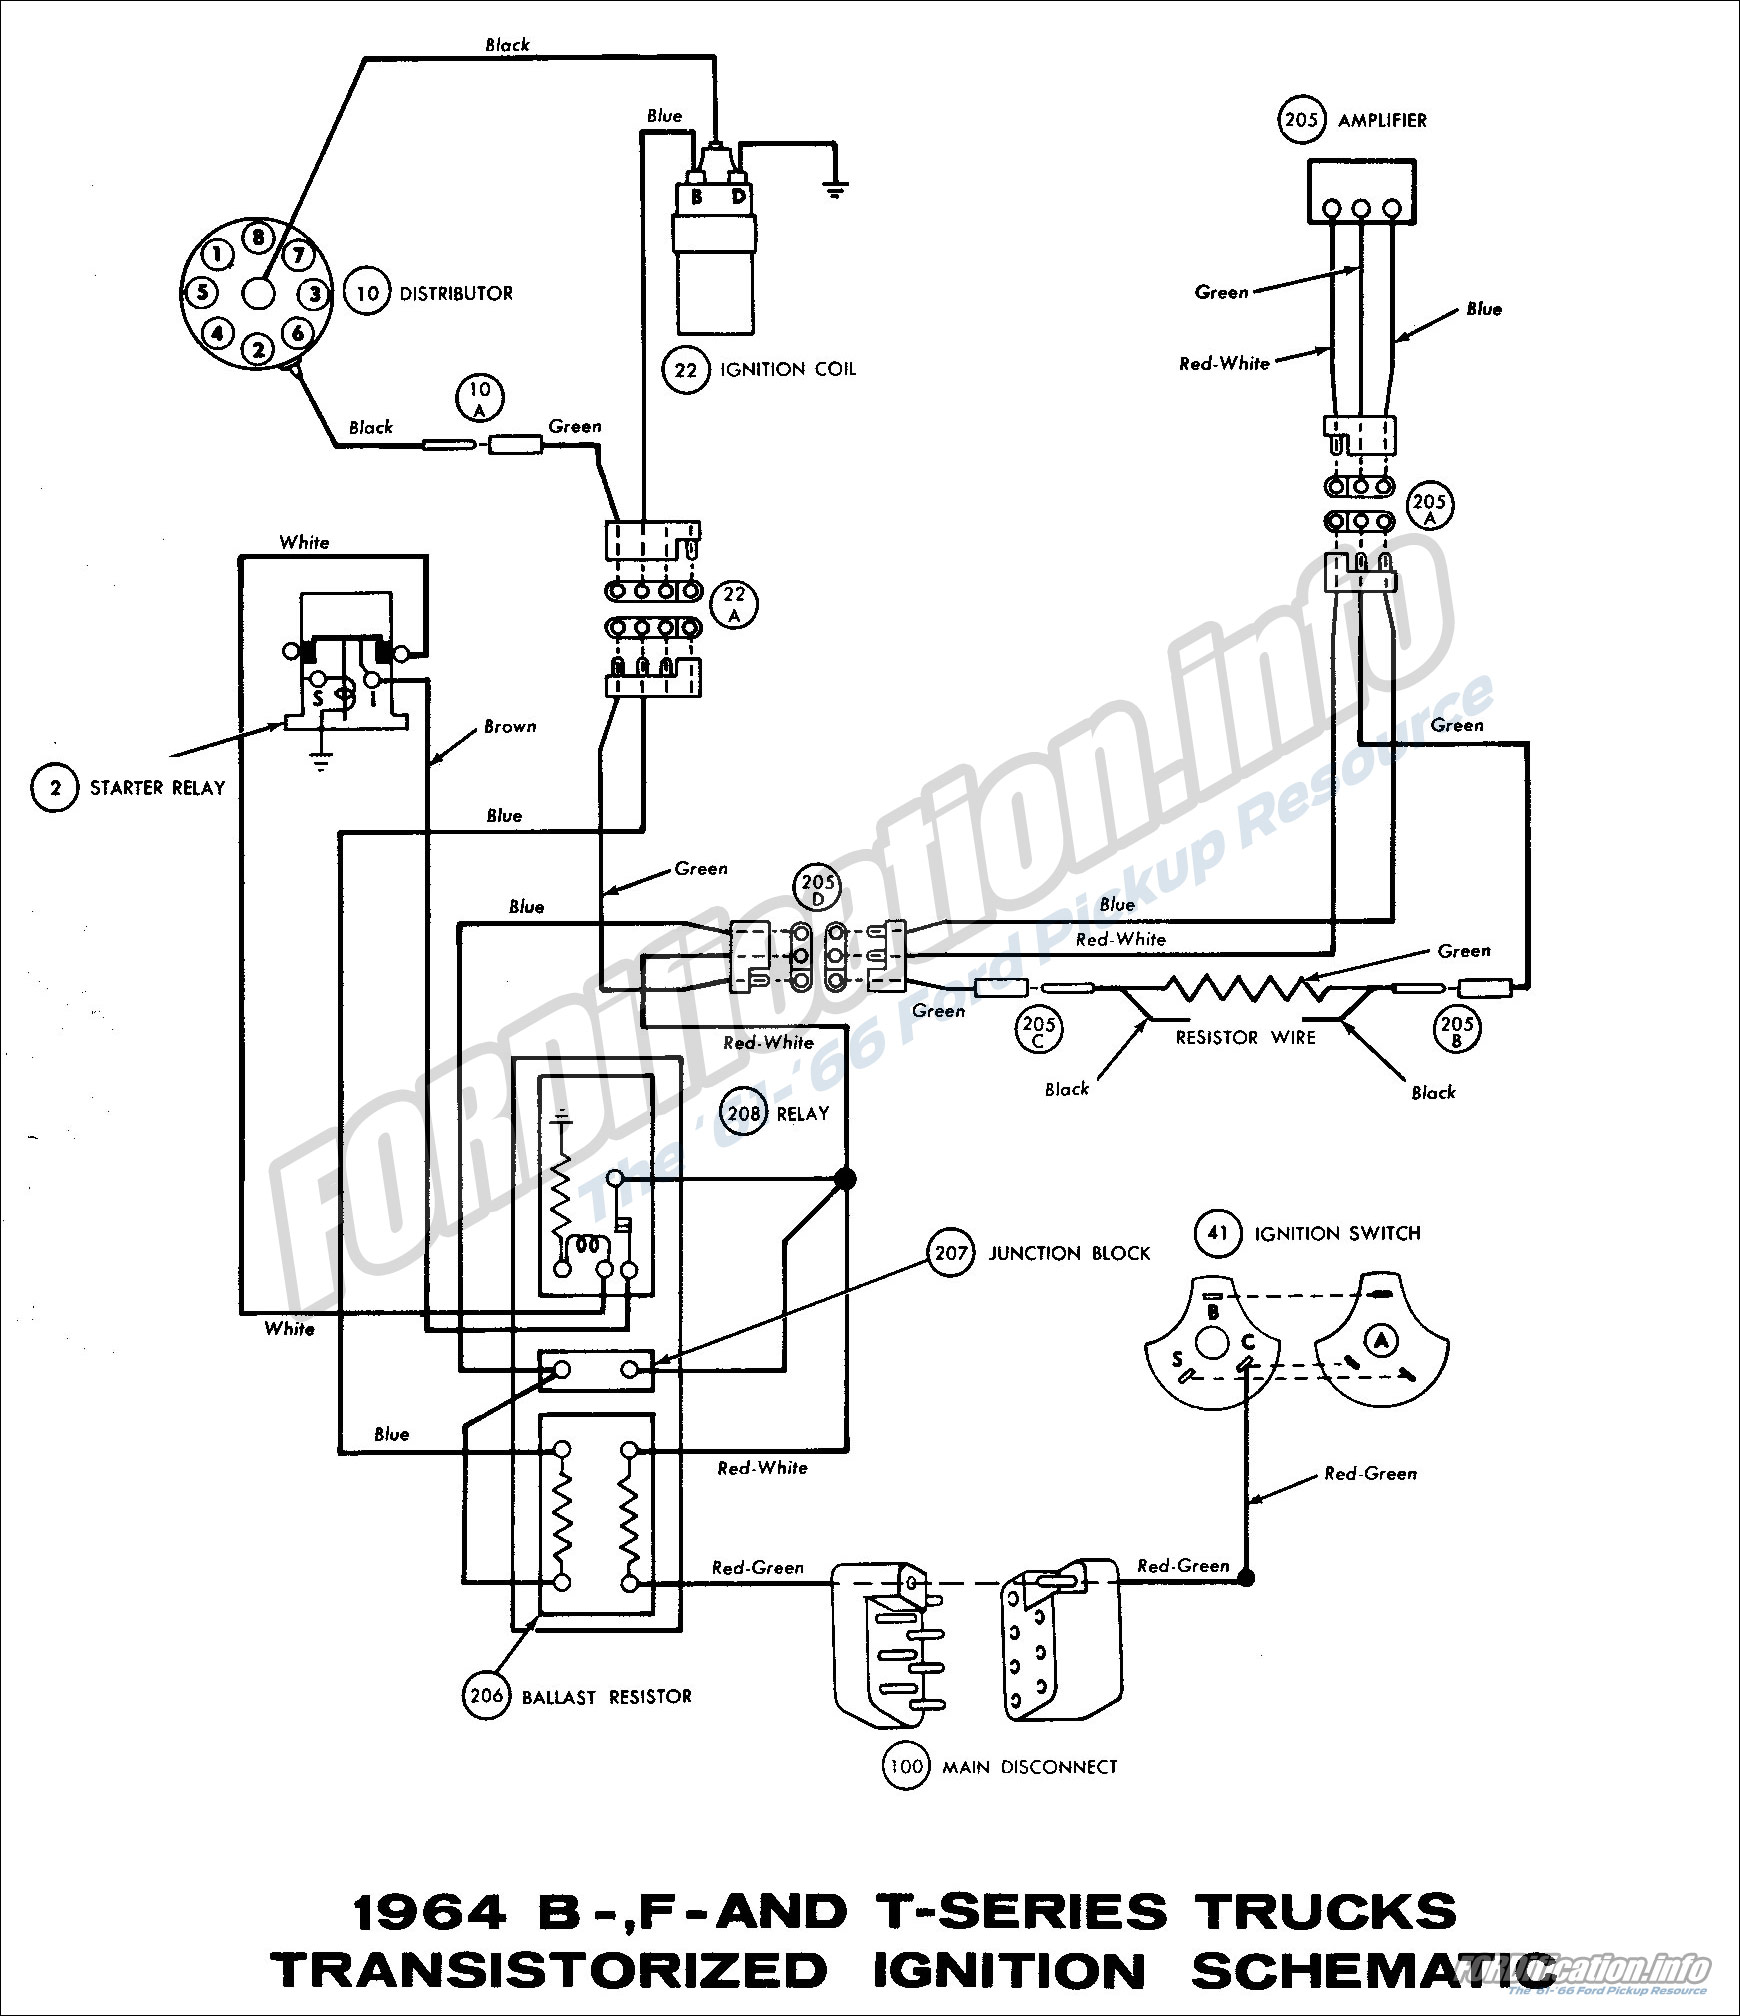 1964 ford truck wiring diagrams fordification info the 61 66 rh fordification info ford ignition switch wiring diagram ford msd ignition wiring diagram